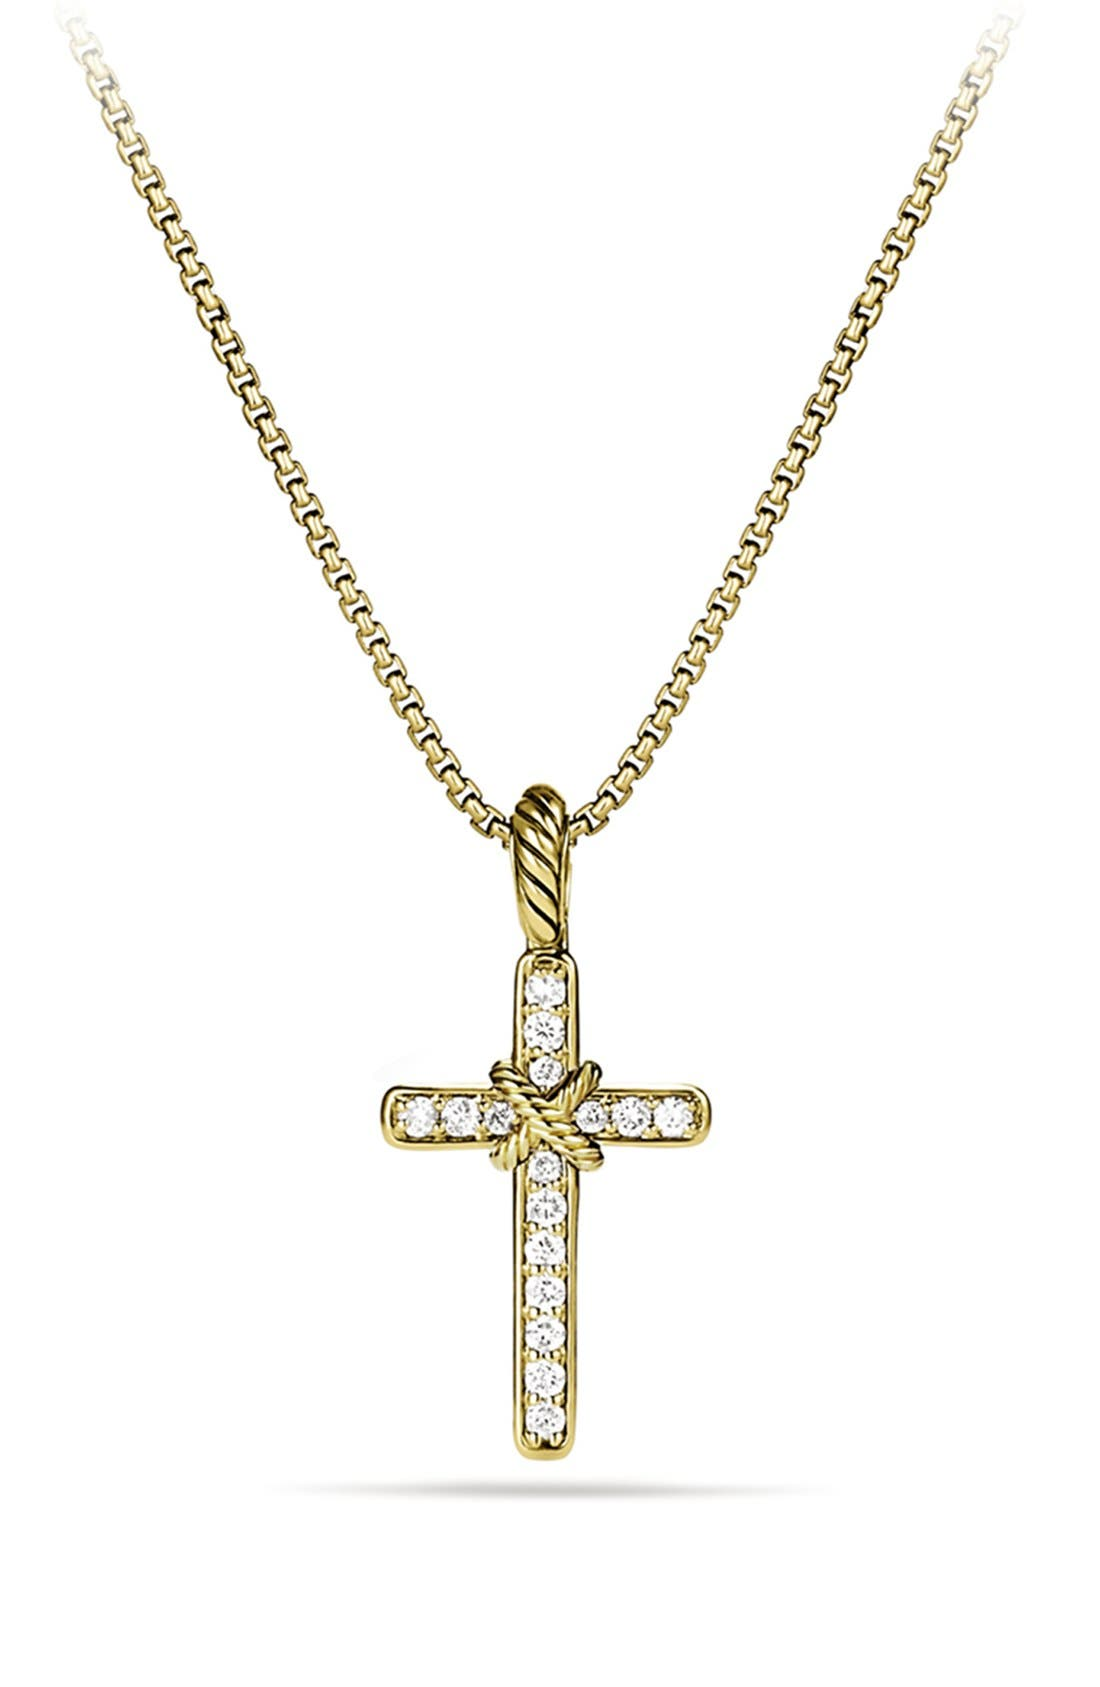 Main Image - David Yurman 'Cable Collectibles - X' Cross with Diamonds in Gold on Chain